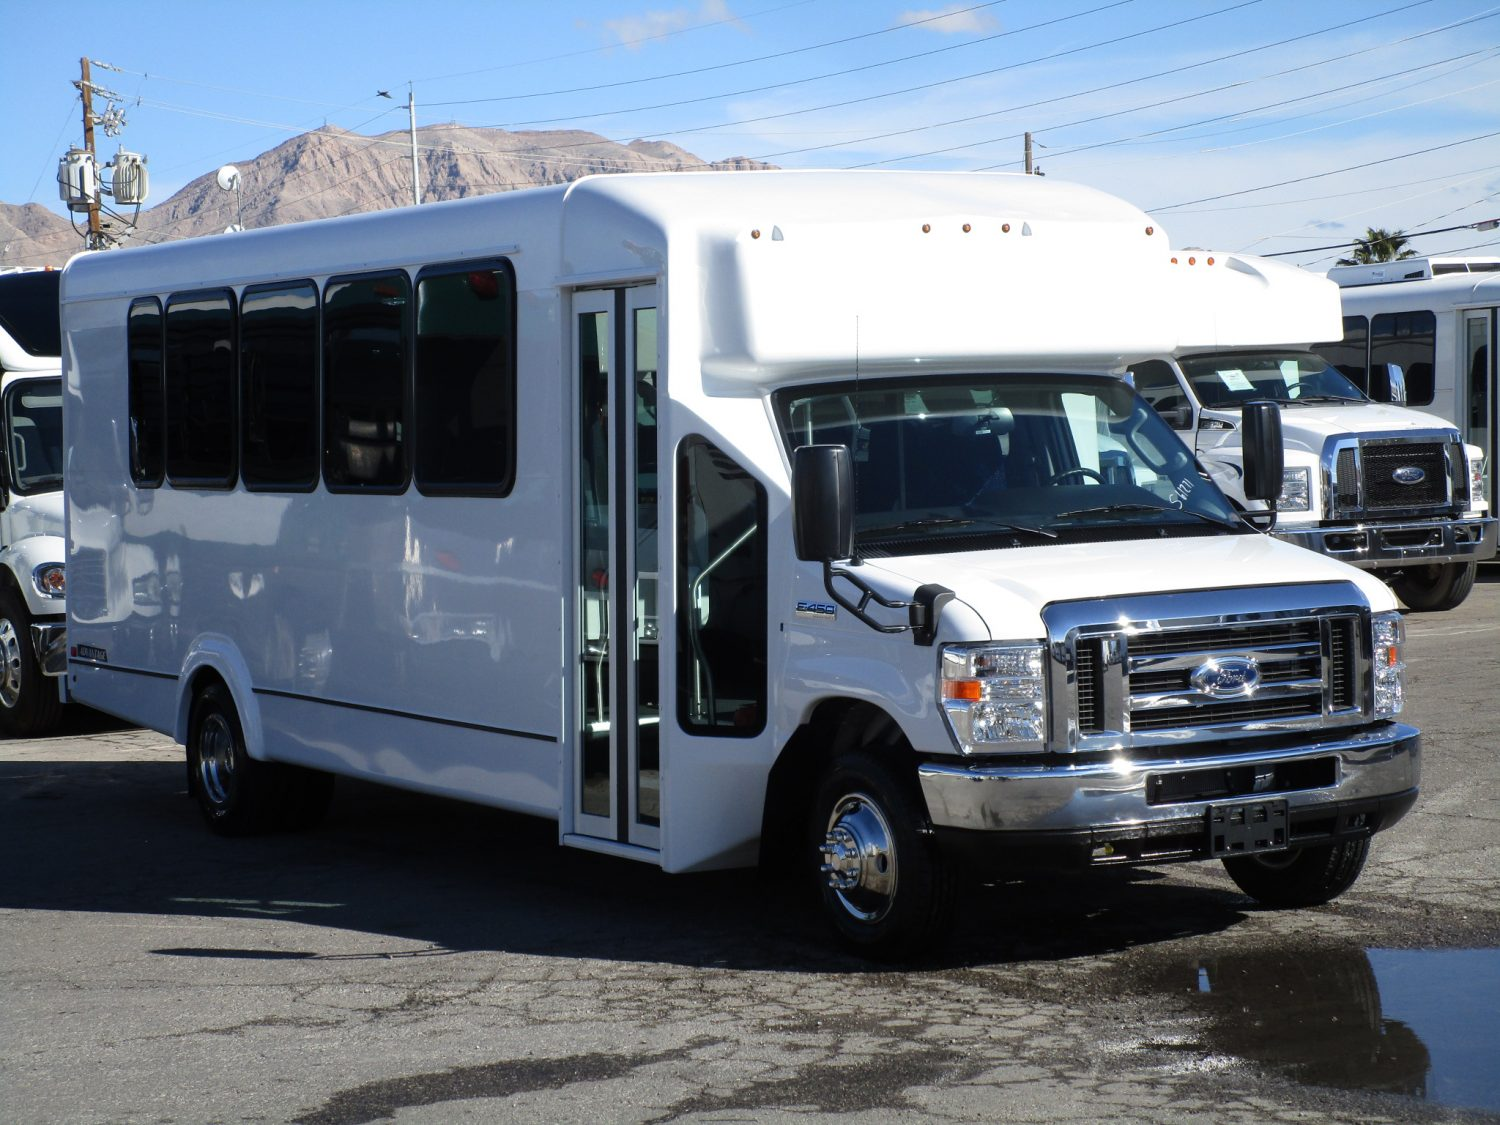 2019 ElDorado Advantage Shuttle Bus Drivers Front